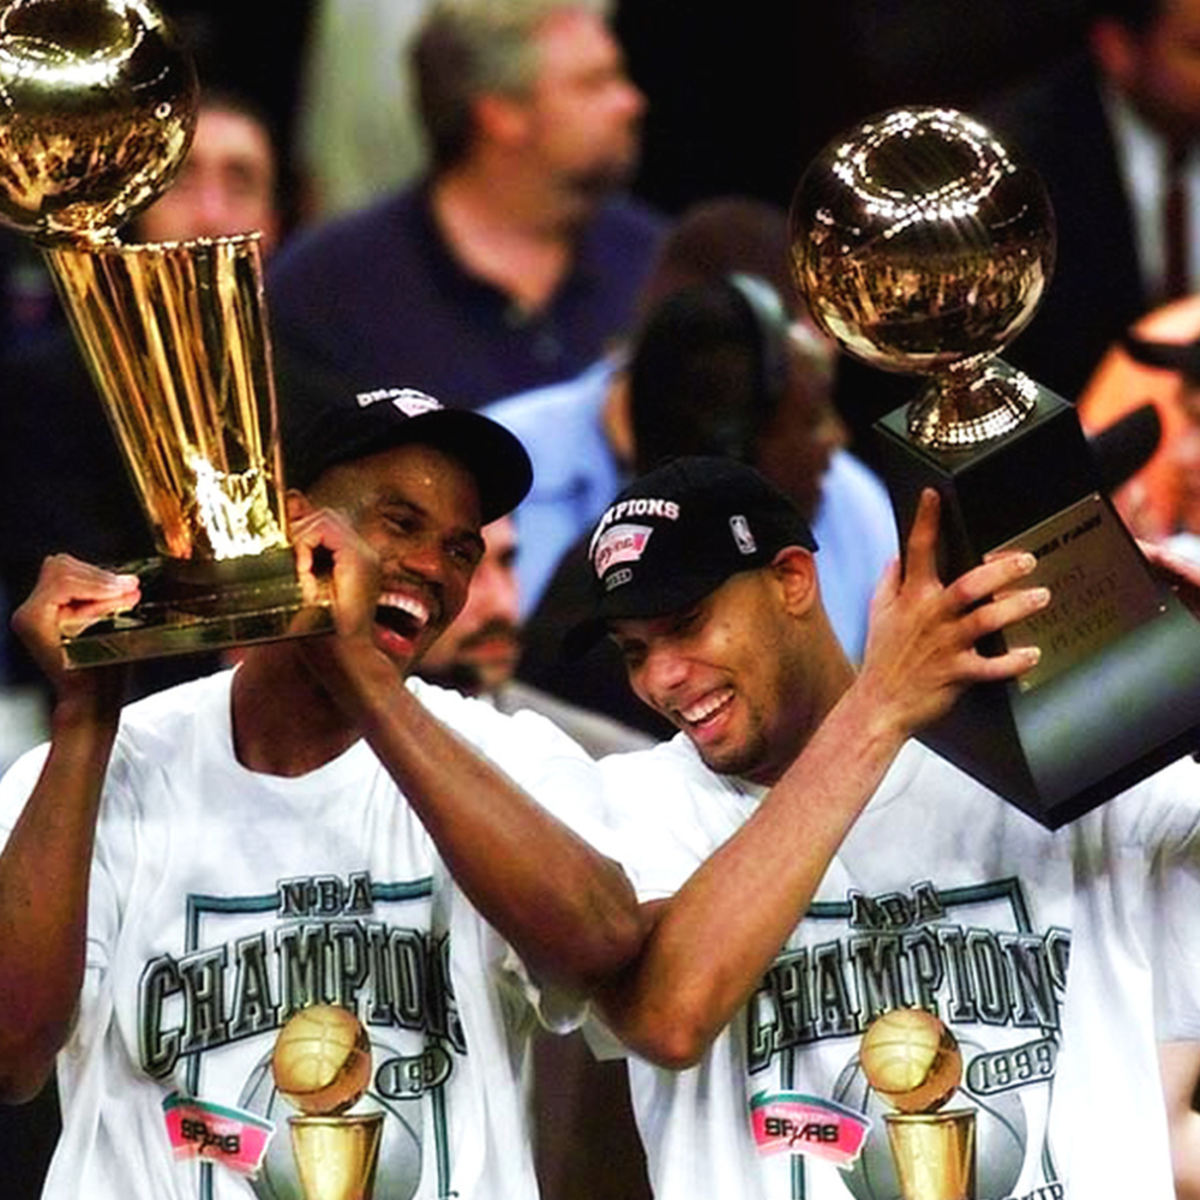 David Robinson with teammate Tim Duncan winning NBA championship.